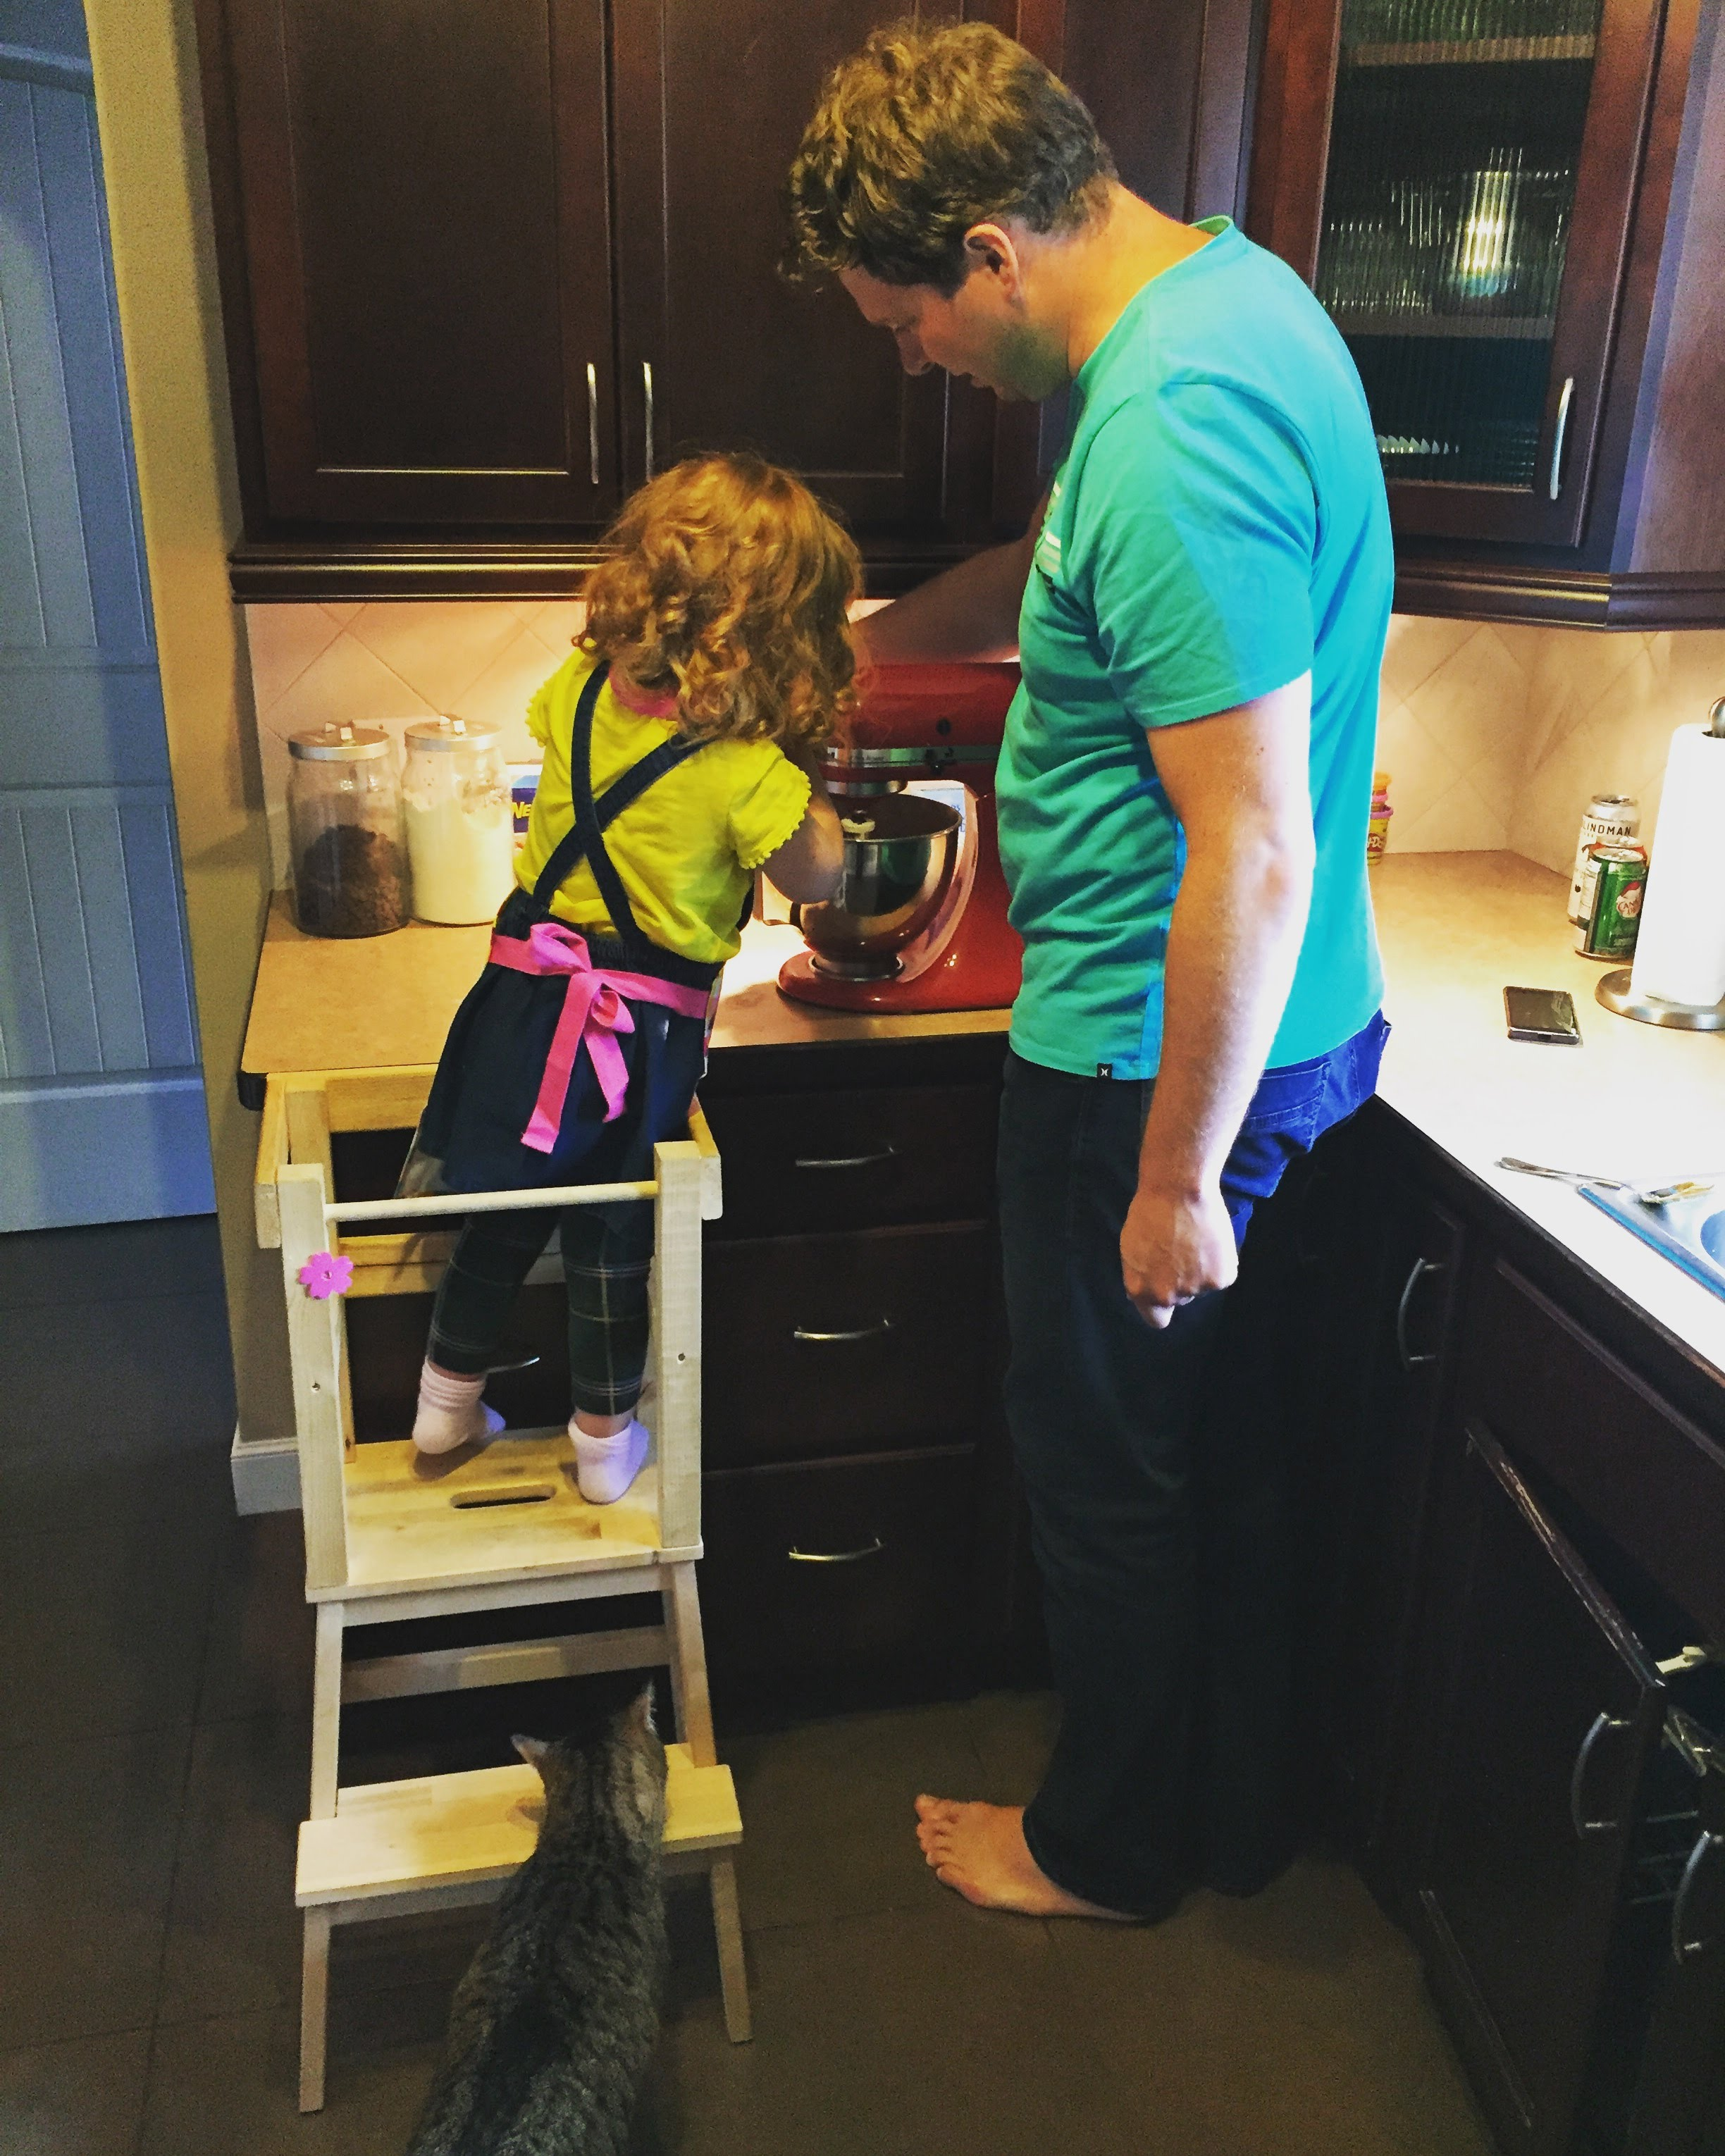 H helping dad make some cookies, with a sneak friend checking for crumbs.